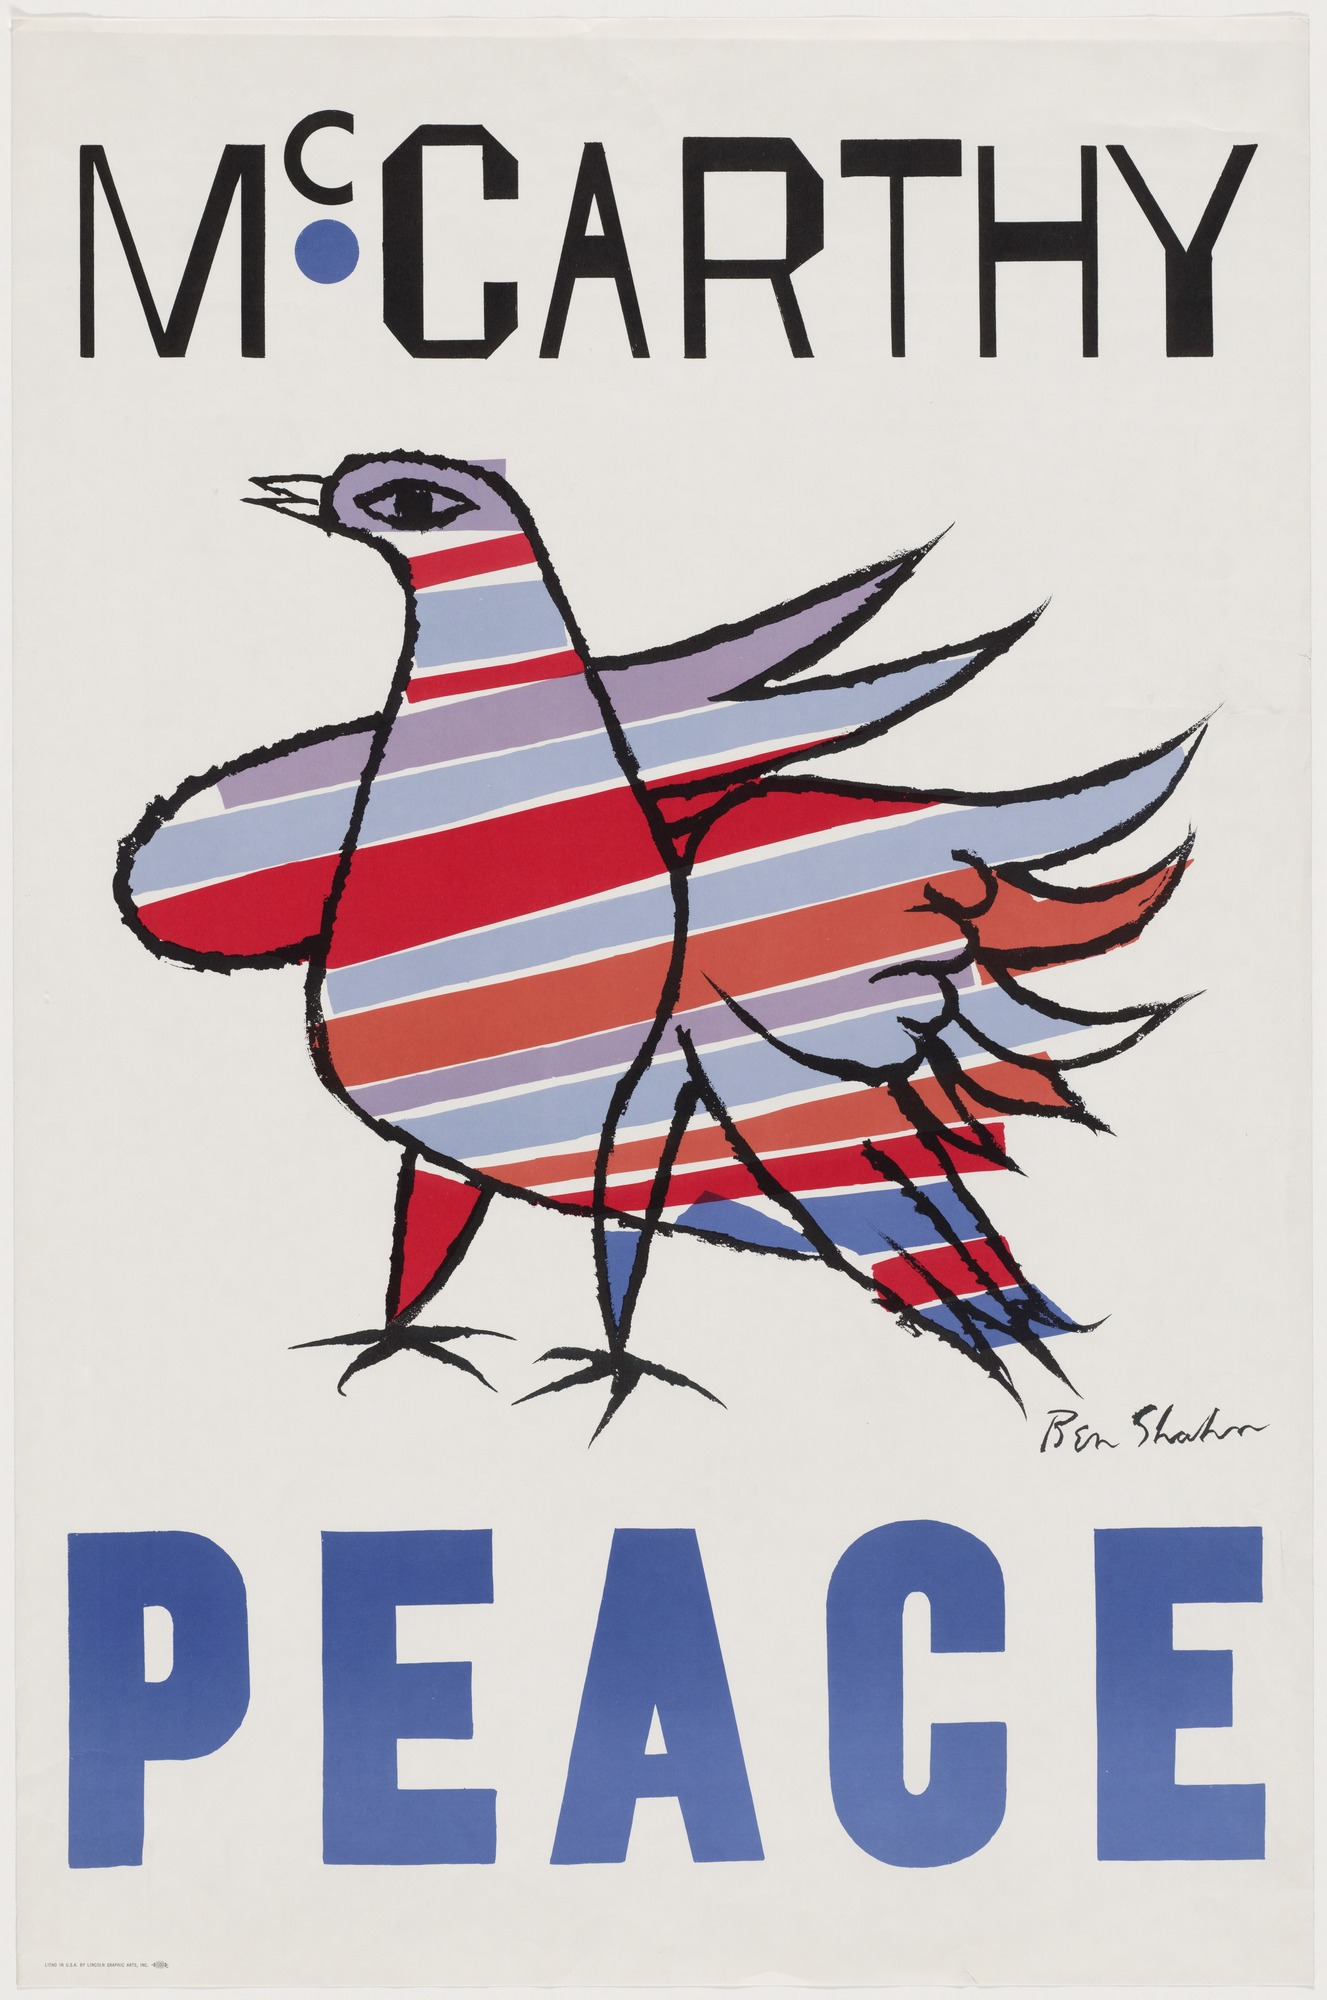 illustrational poster of a bird colored with blue red and white stripes